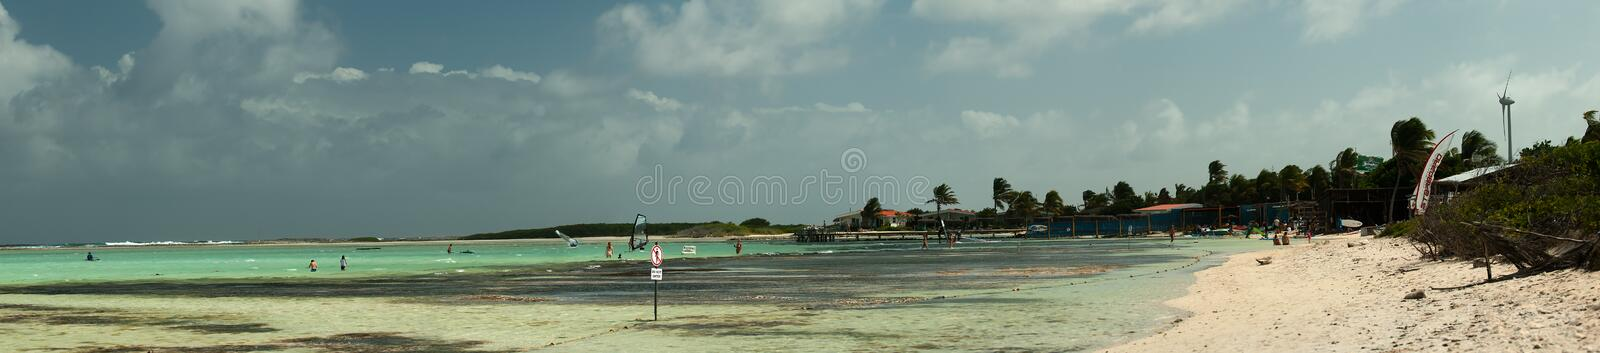 Lac Bay Sorobon Beach royalty free stock photos